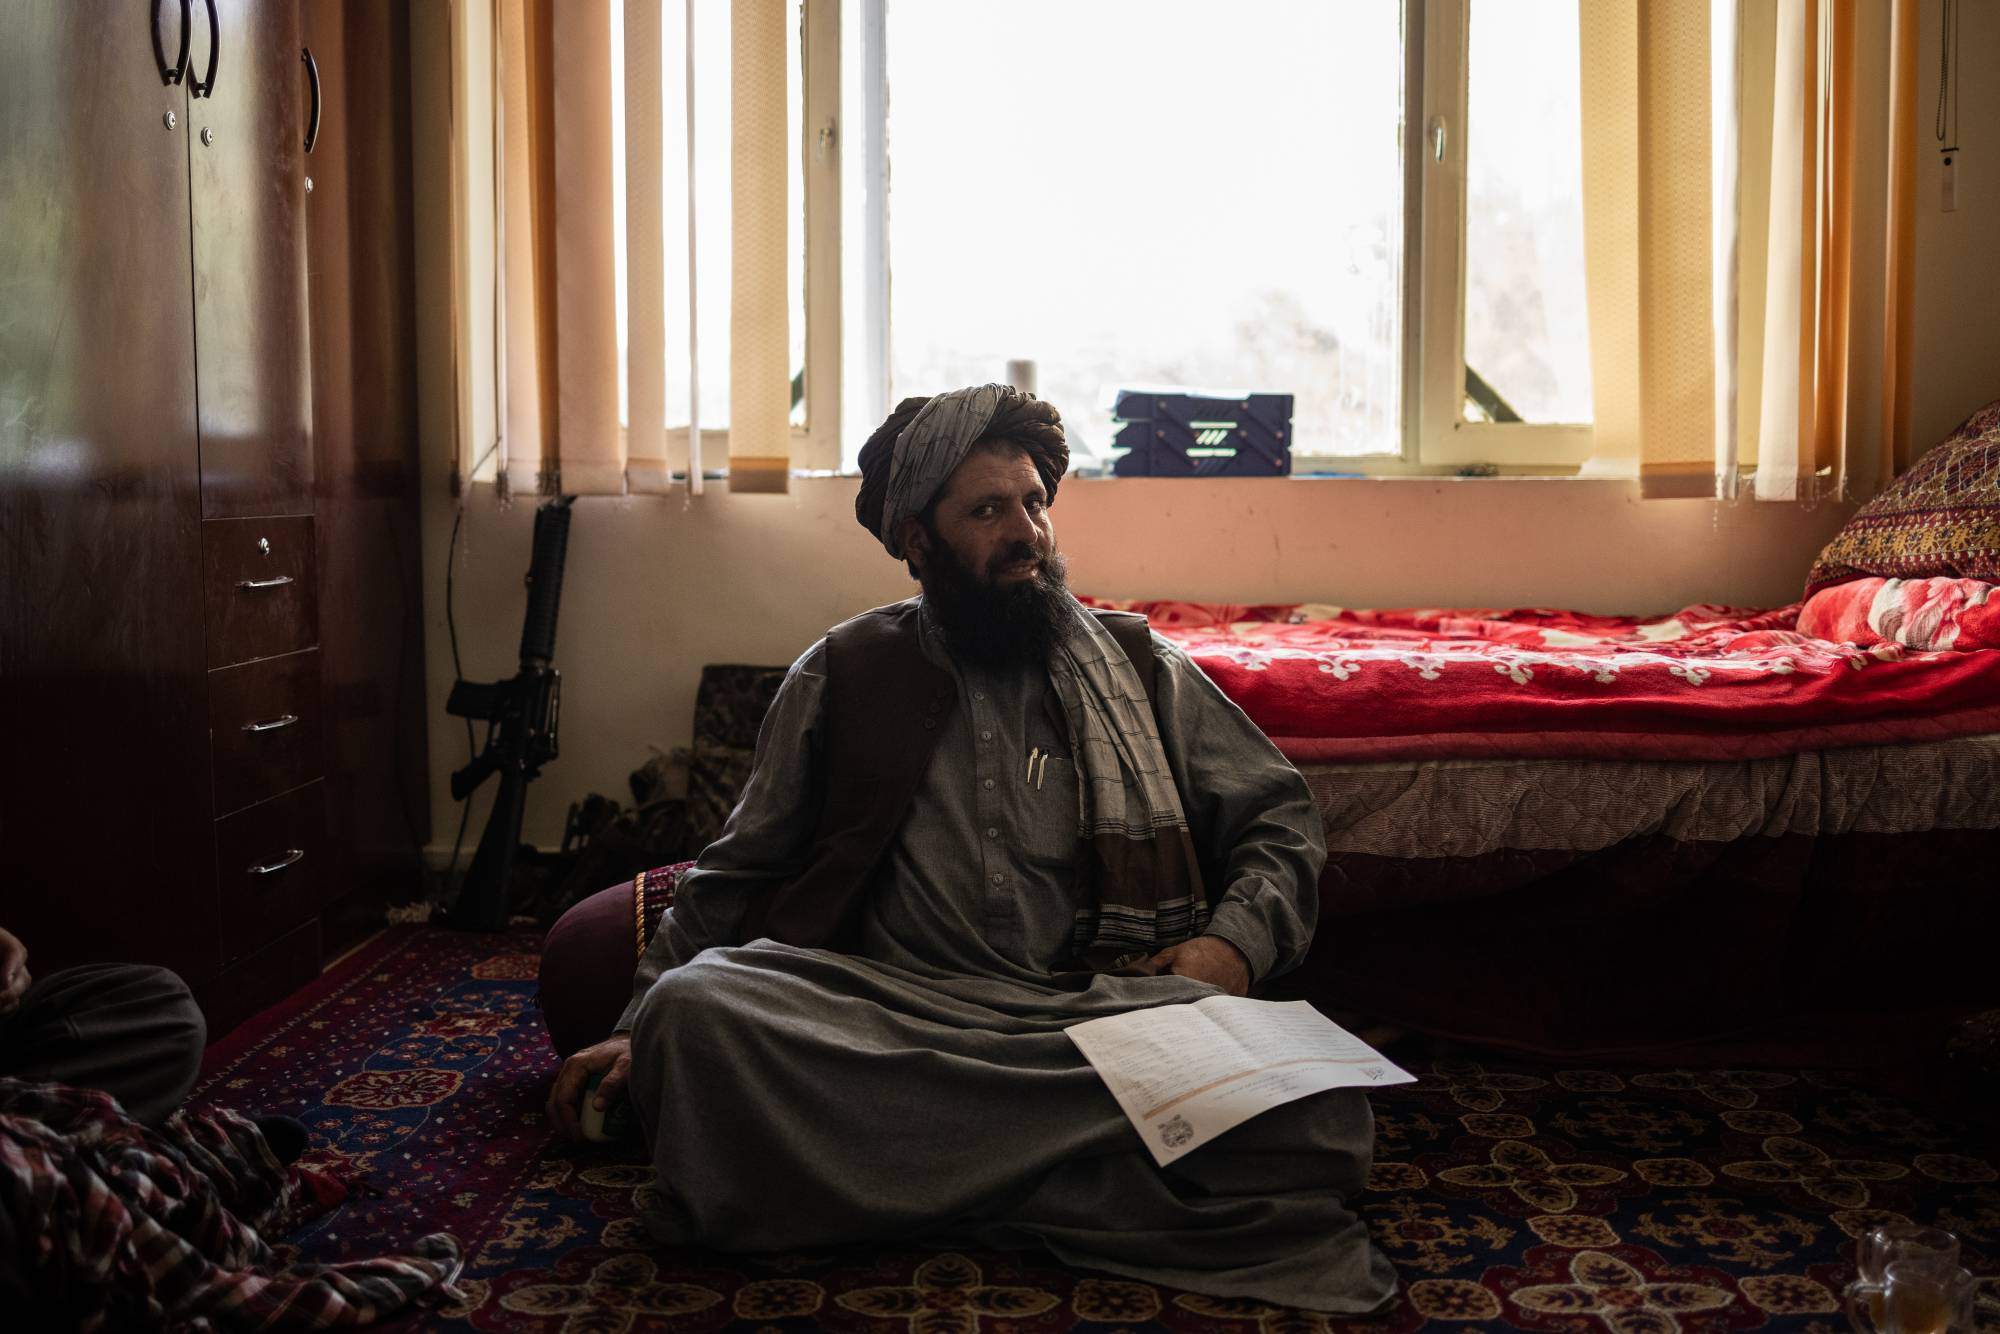 Ghulam Maroof Rashid, a Taliban commander in Maindan Wardak, Afghanistan. A young intelligence officer with the Taliban in the 1990s, Rashid remembers the attacks on the World Trade Center and the Pentagon. | JIM HUYLEBROEK / THE NEW YORK TIMES